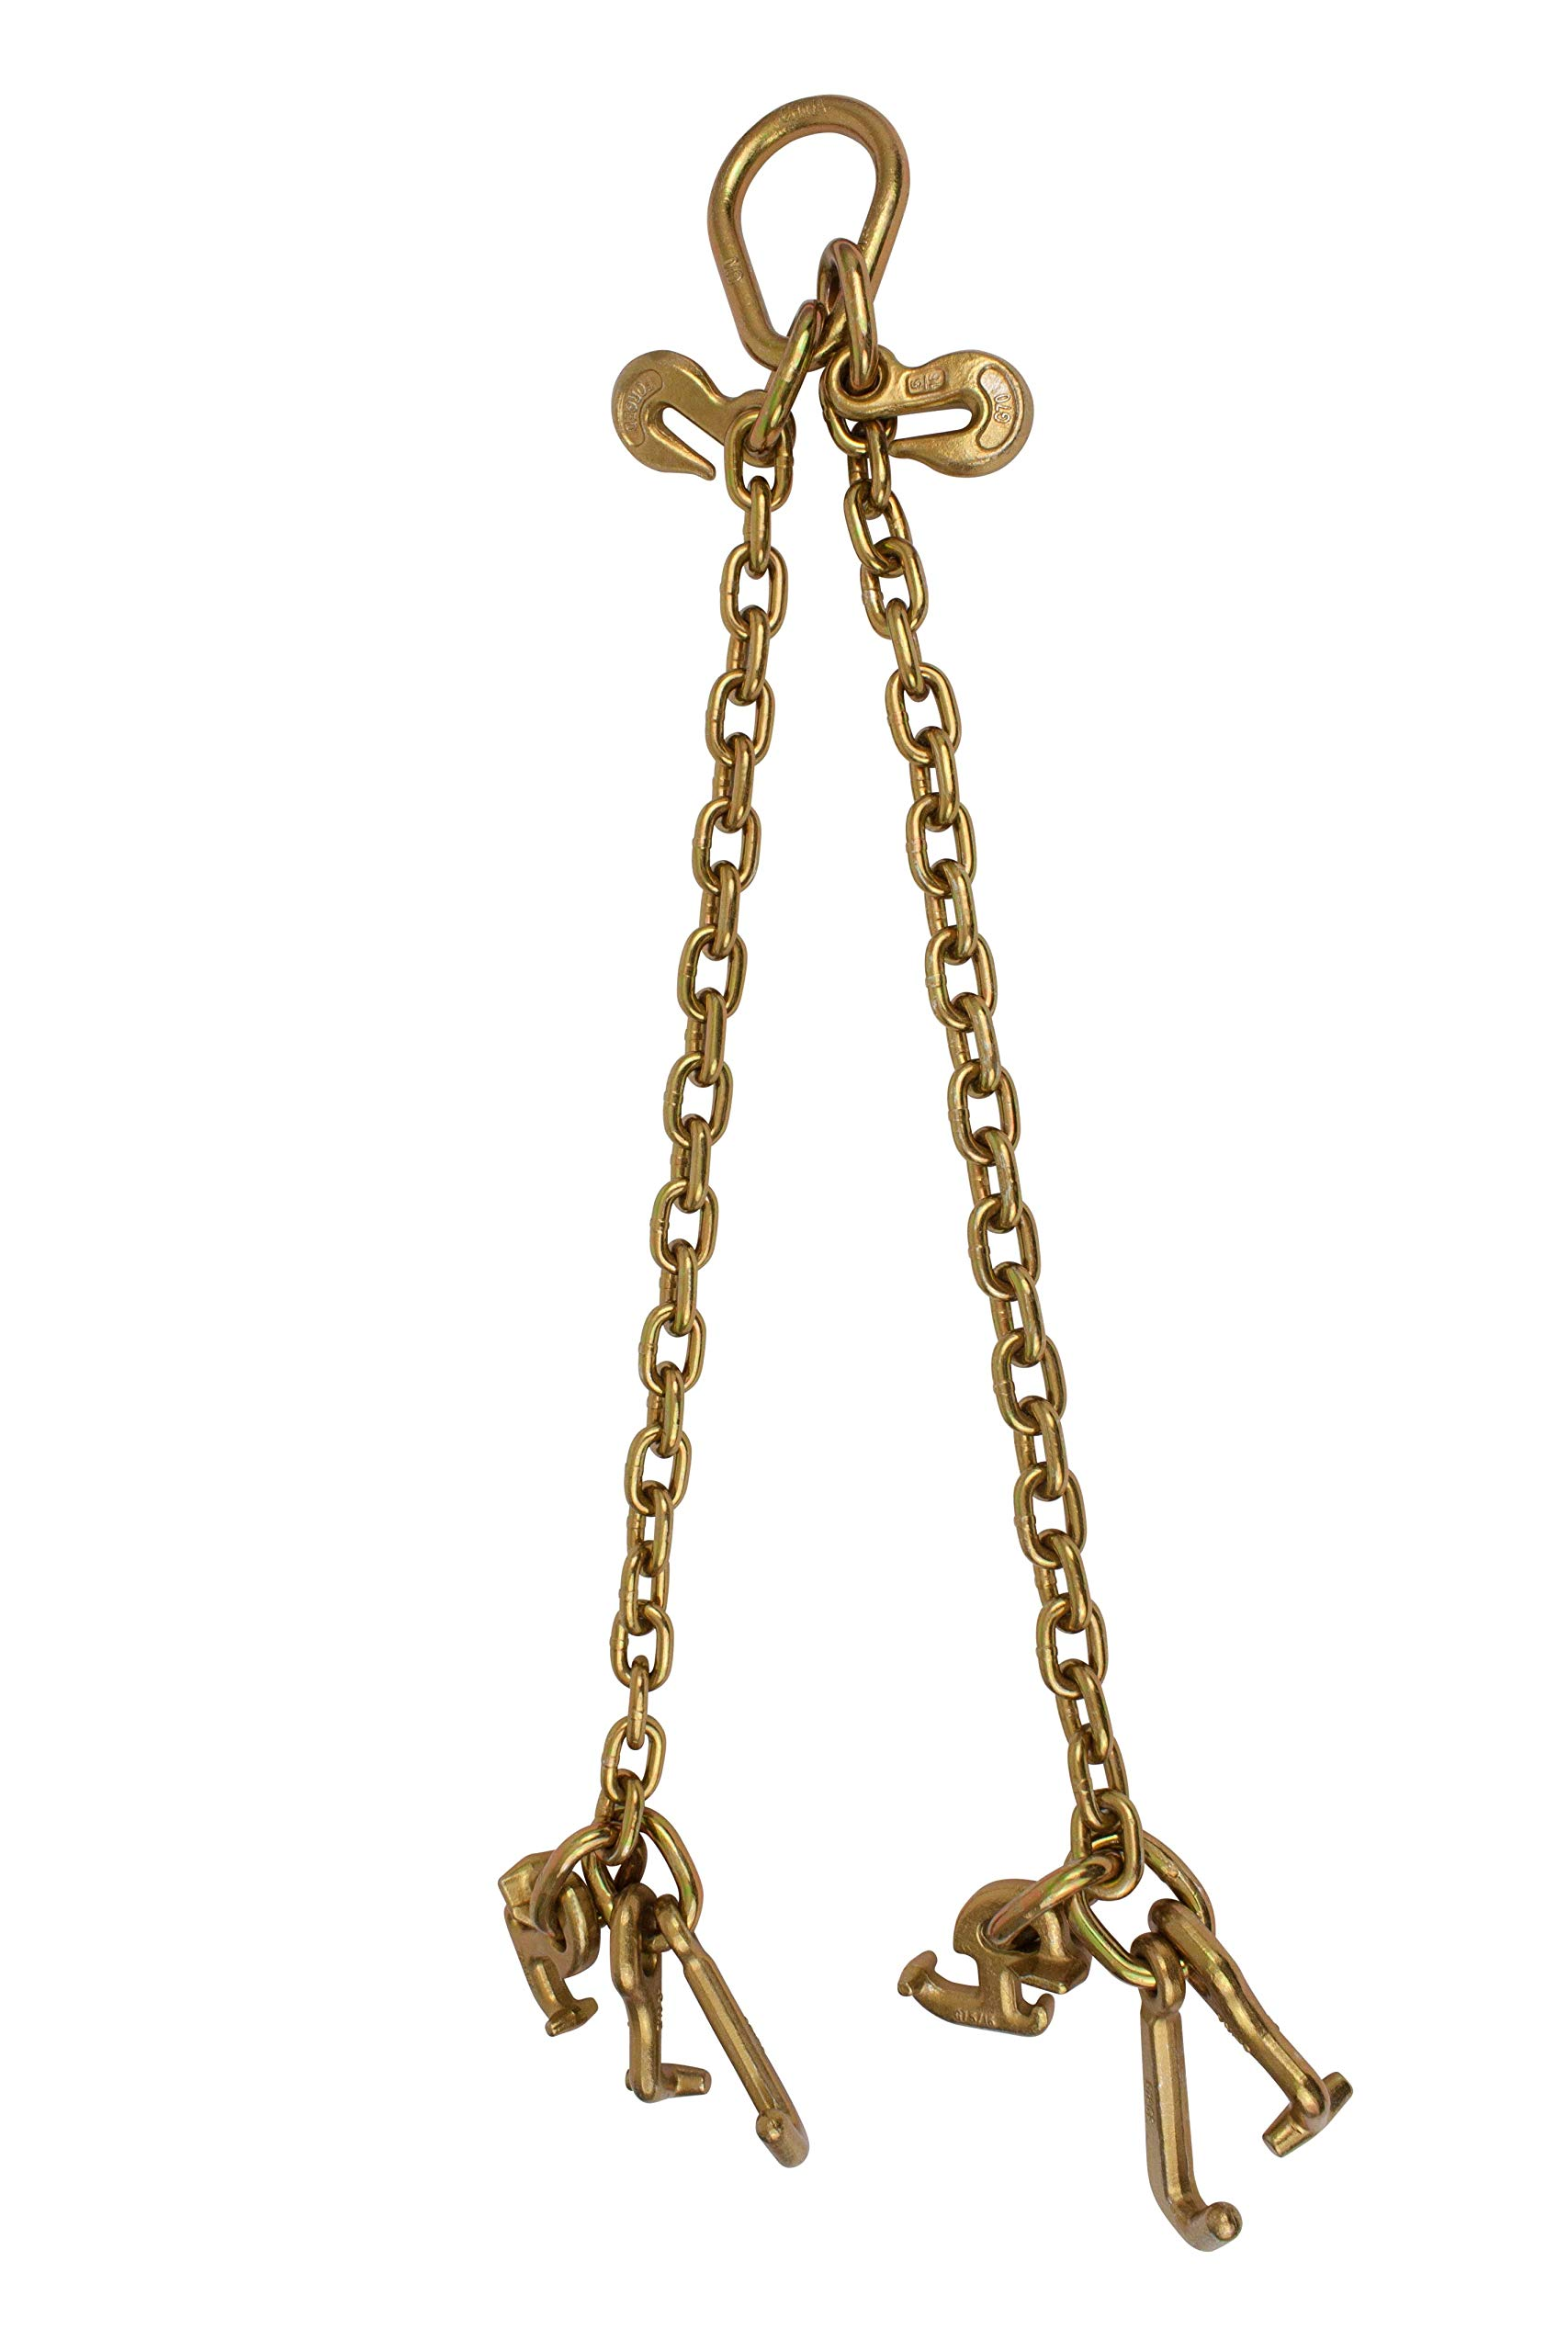 G70 V-Chain Bridle w/RTJ Cluster Hooks and Grab Hooks, 2' Legs Tow Chain 4700 WLL